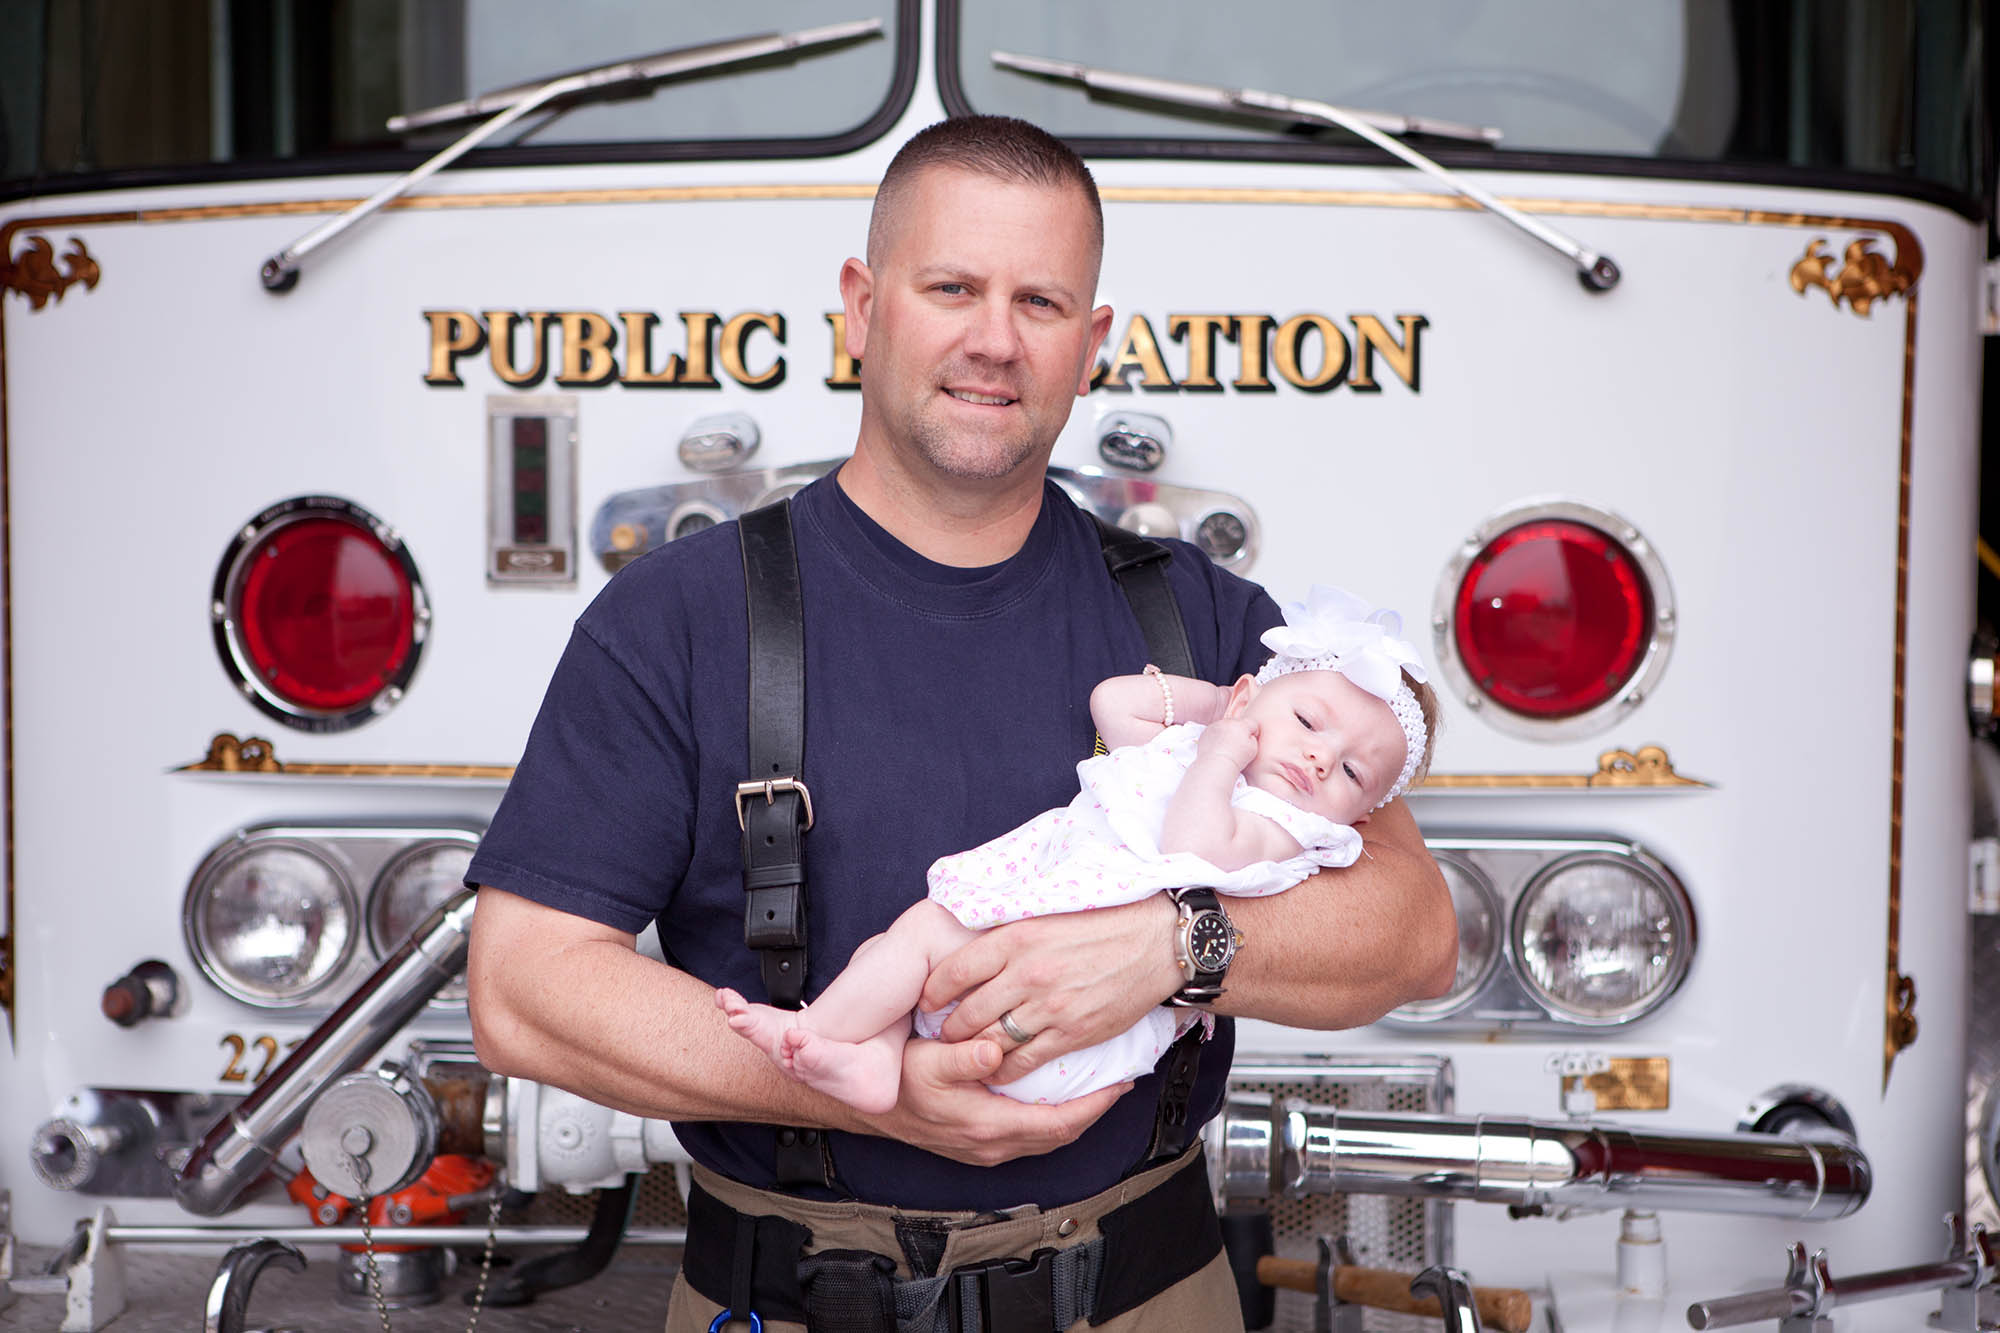 Firefighter Adopts Baby Girl He Delivered on The Job after Saving Her Life